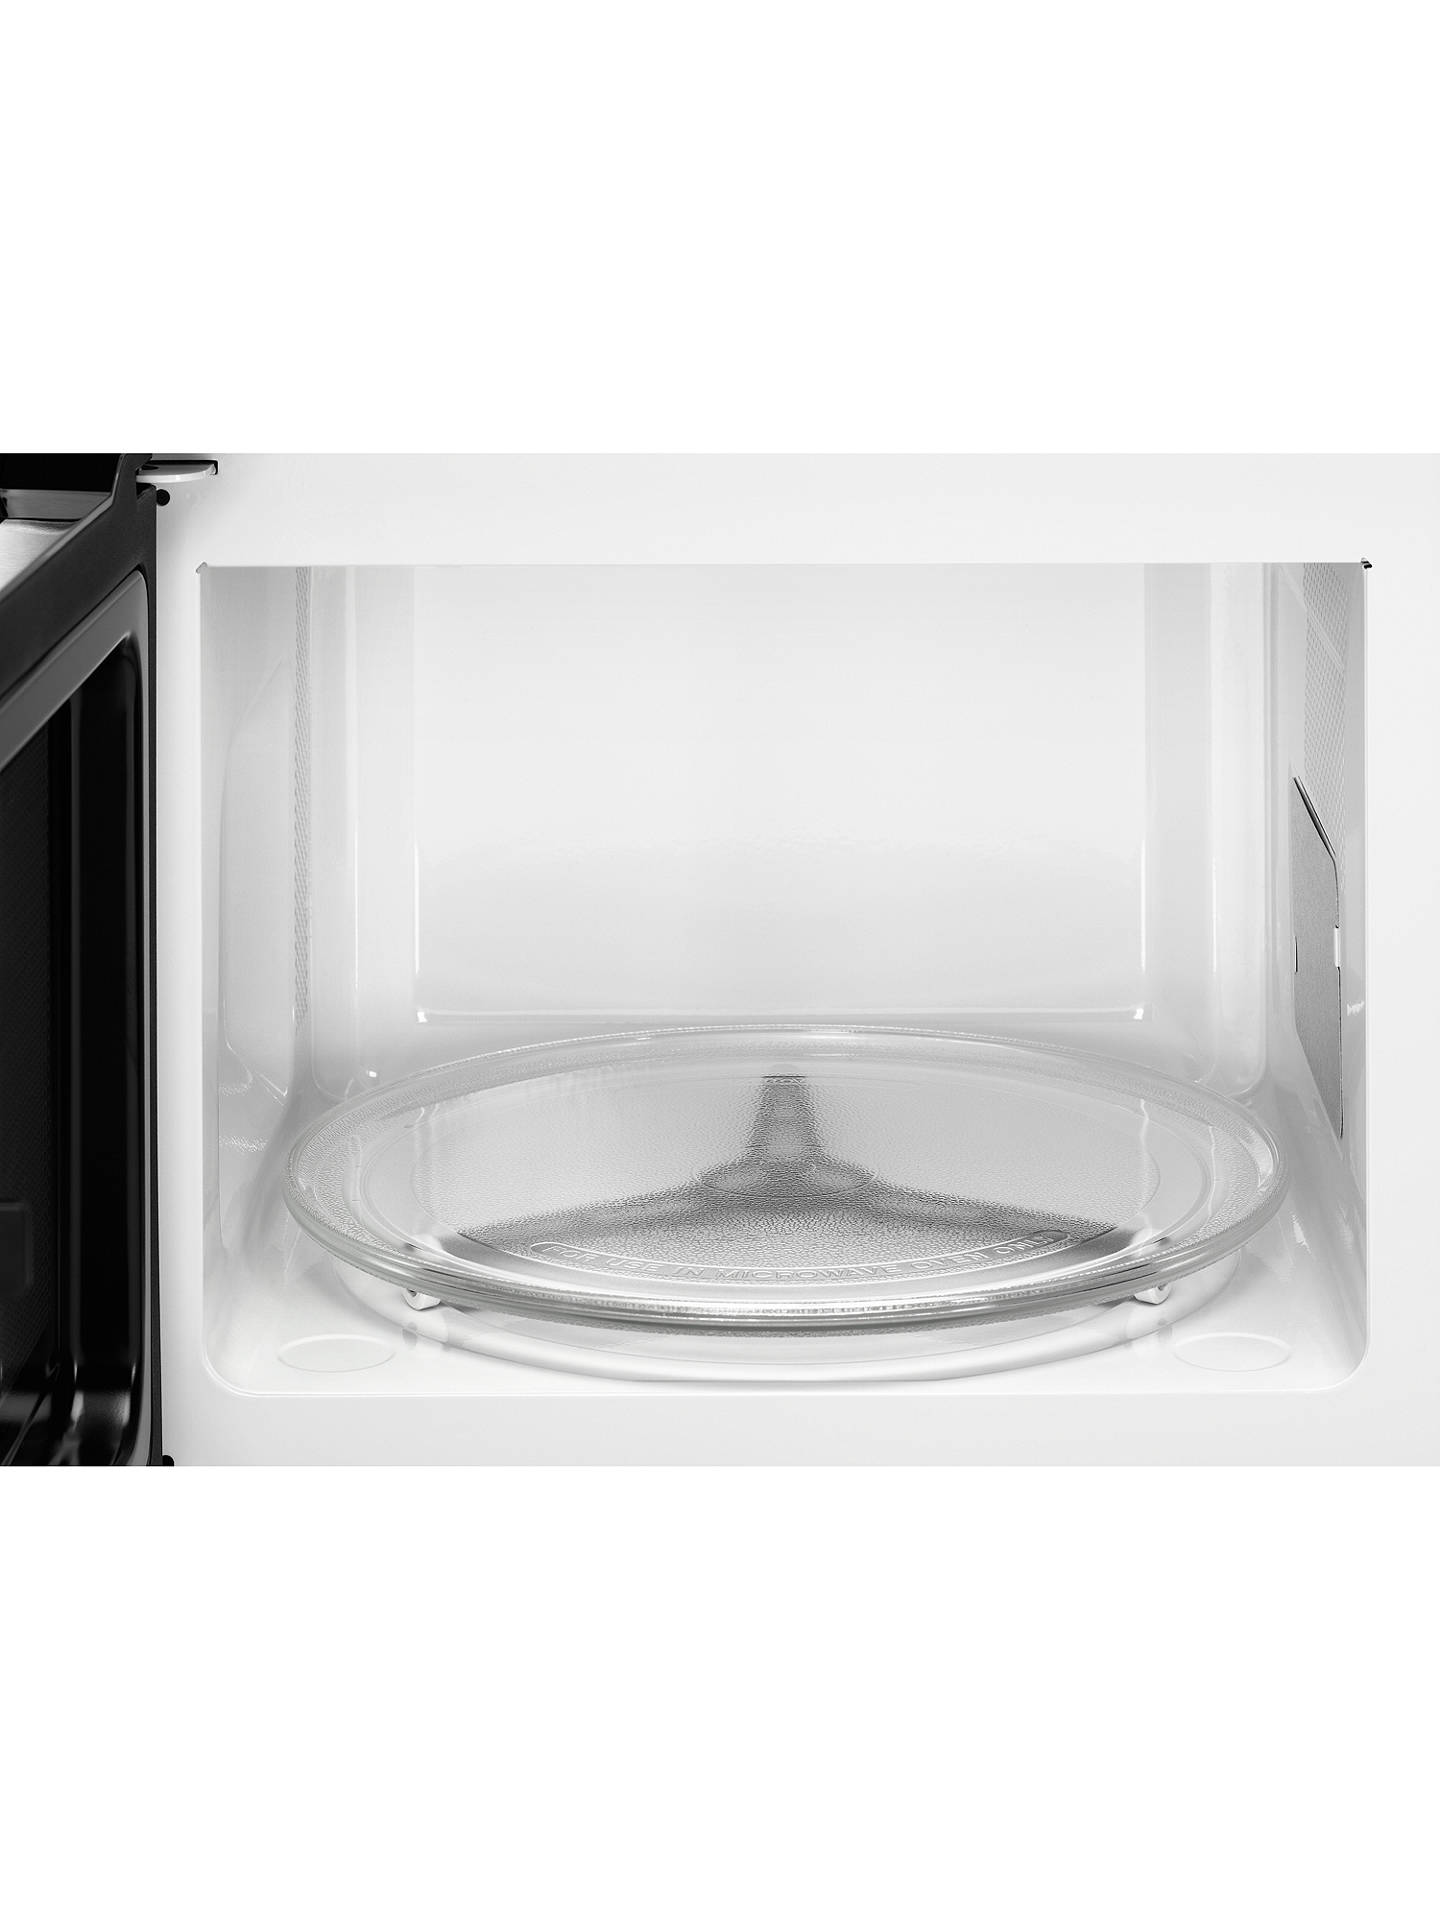 Buy AEG MBB1756S-M Built-In Microwave, Stainless Steel Online at johnlewis.com